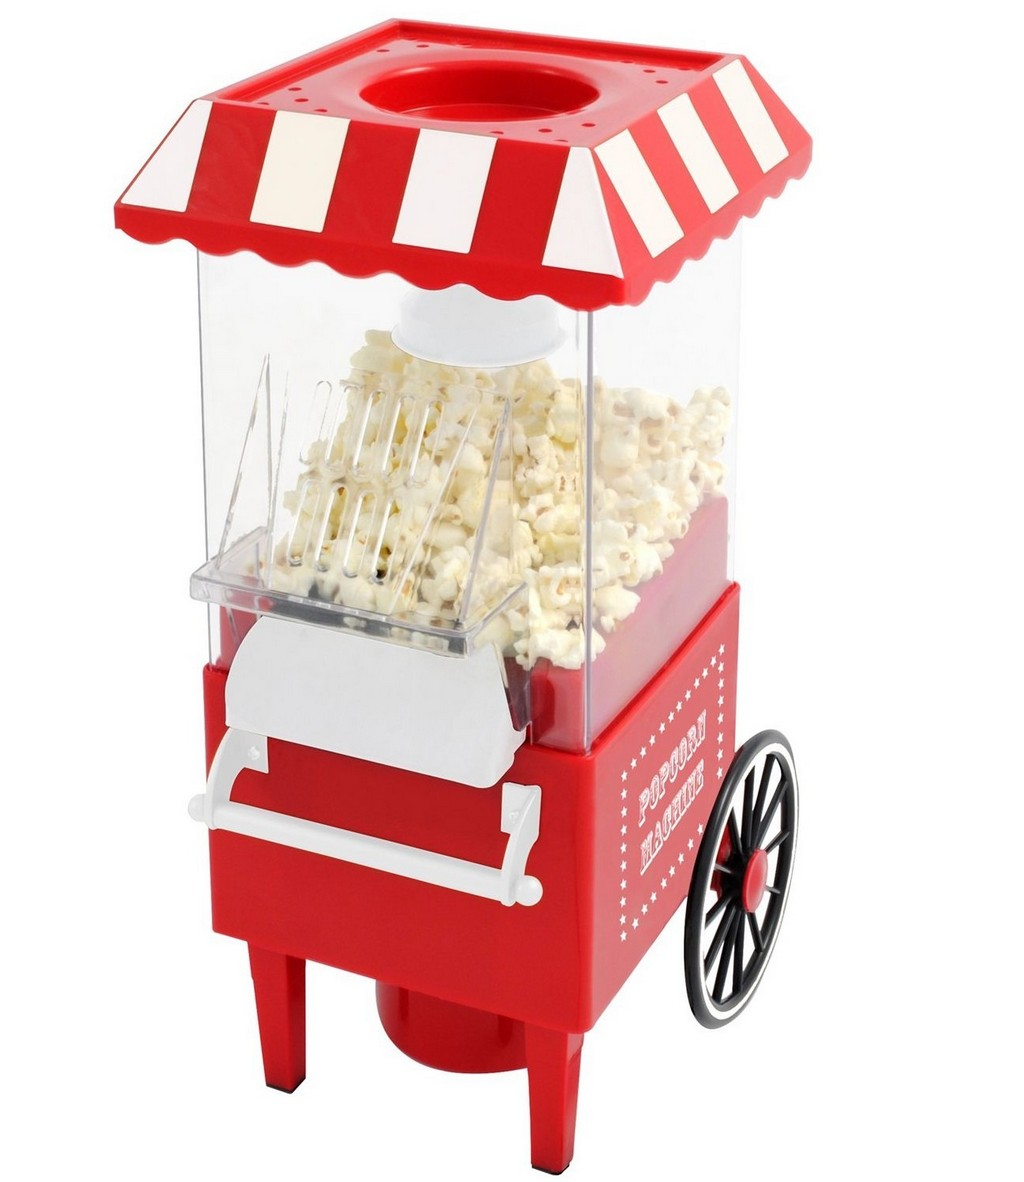 counter top popcorn popper, popcorn machine for home, hot air popcorn maker